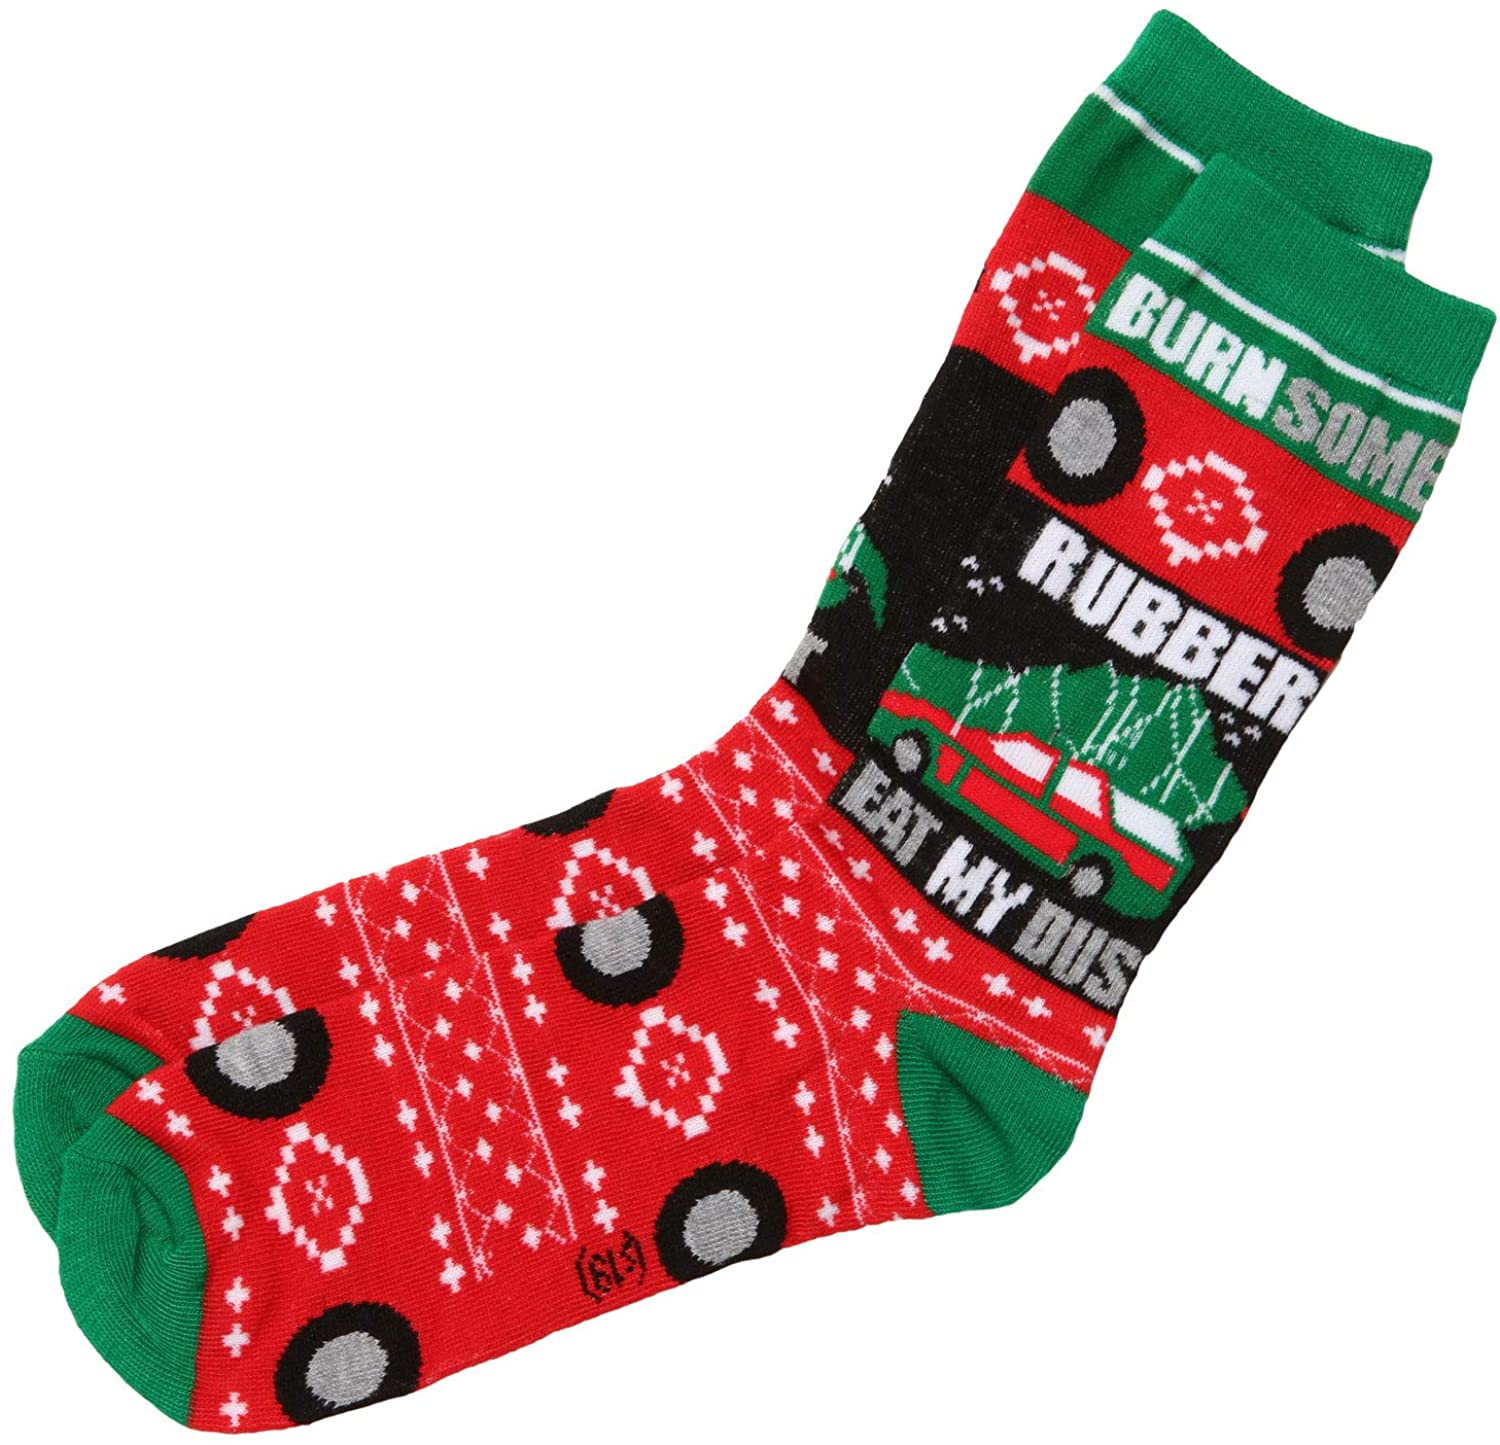 National Lampoons Christmas Vacation Burn Some Rubber Crew Socks